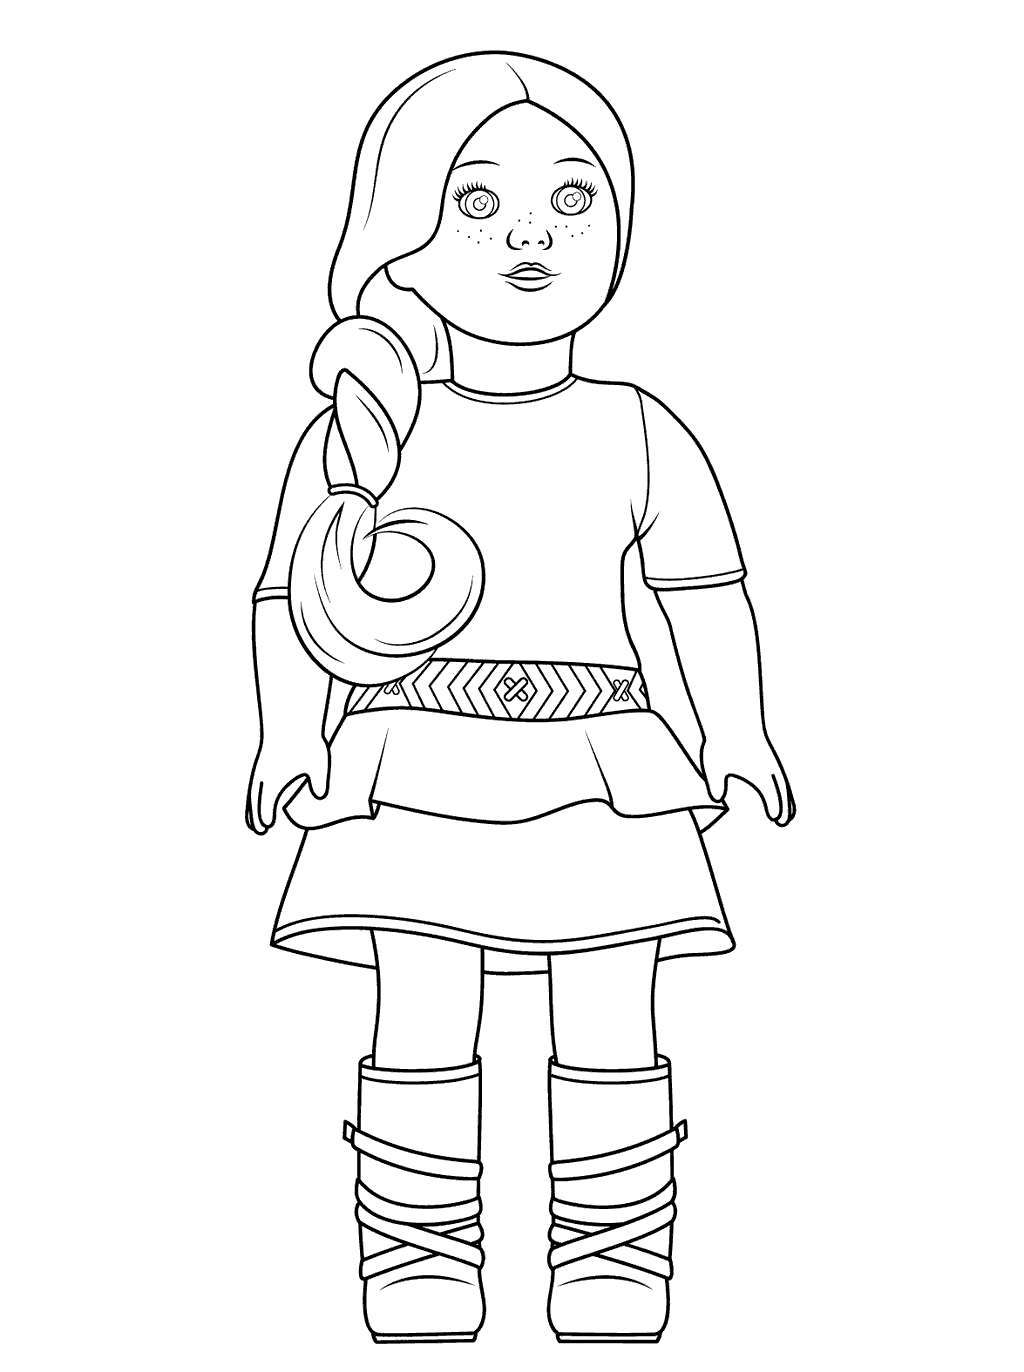 Free Cute American Girl Coloring Pages Native Julie printable